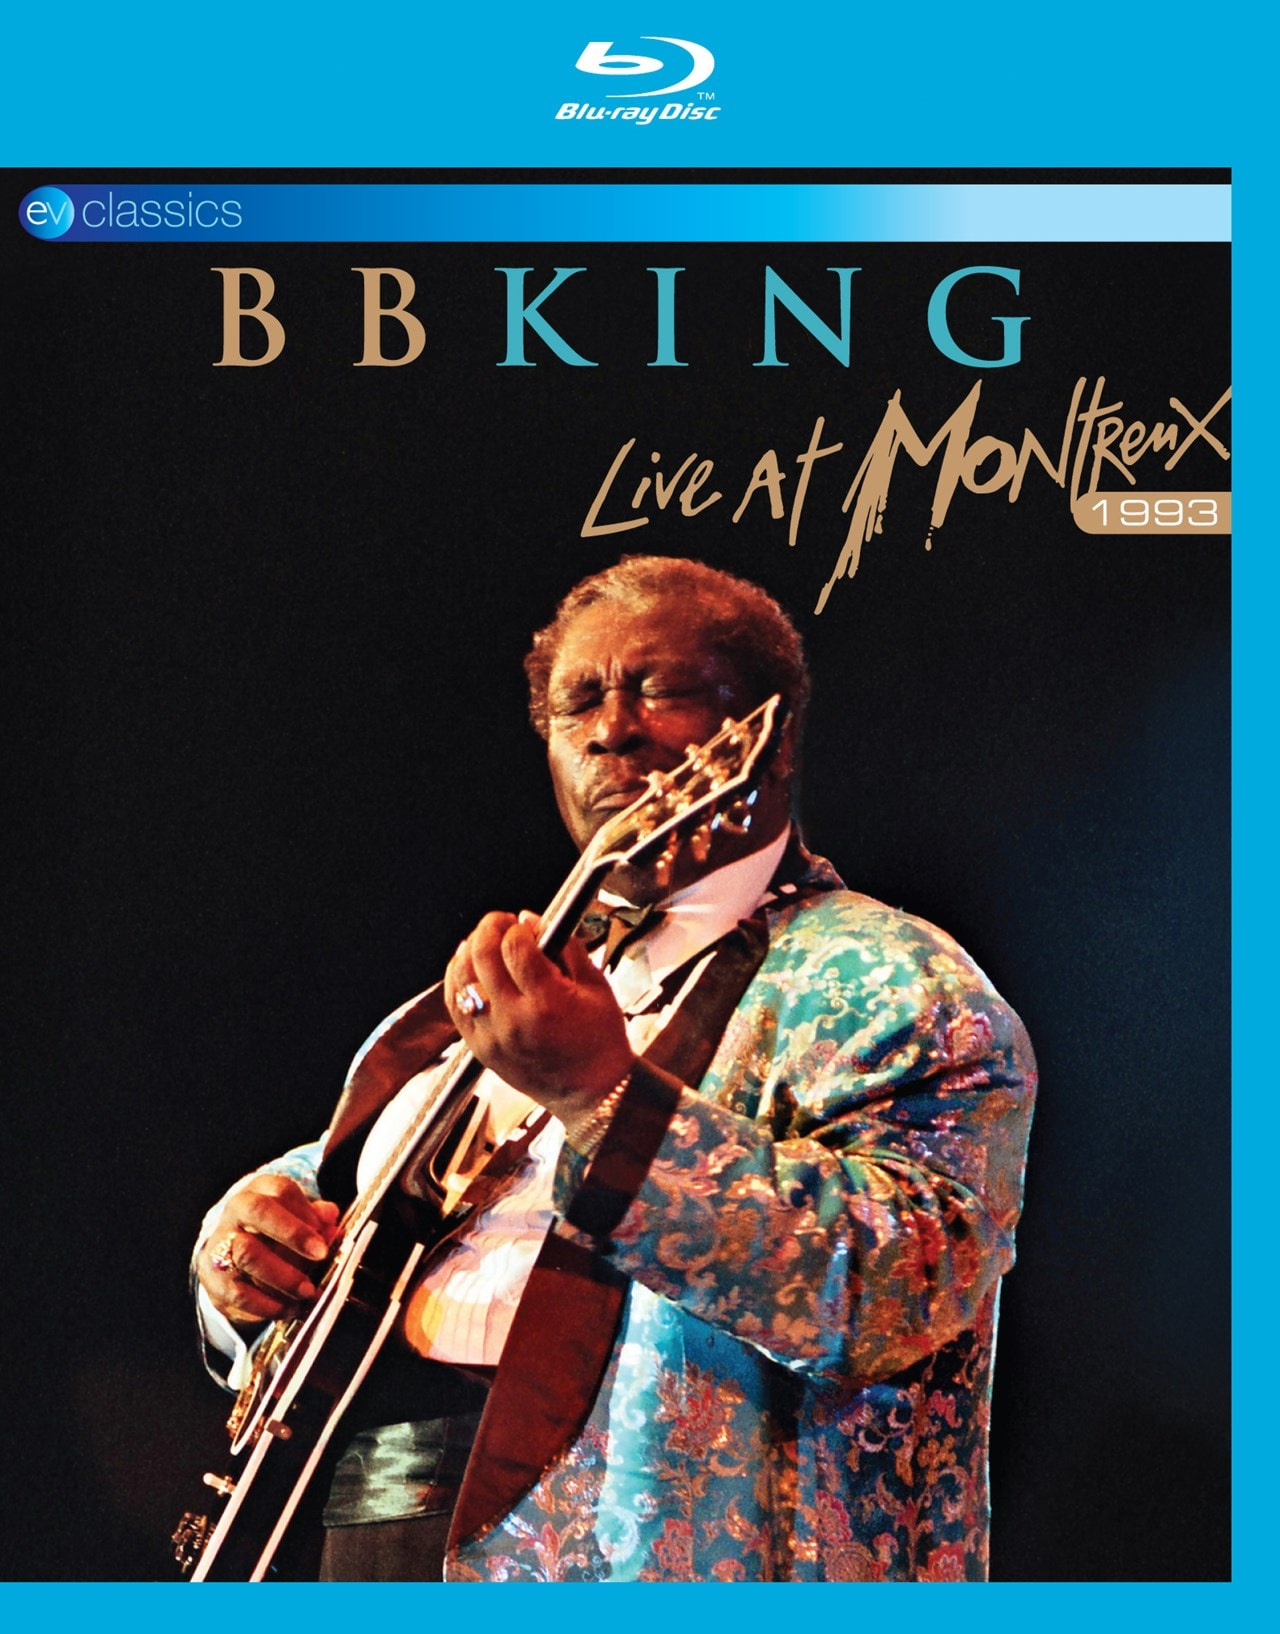 B.B. King: Live at Montreux 1993 - 1